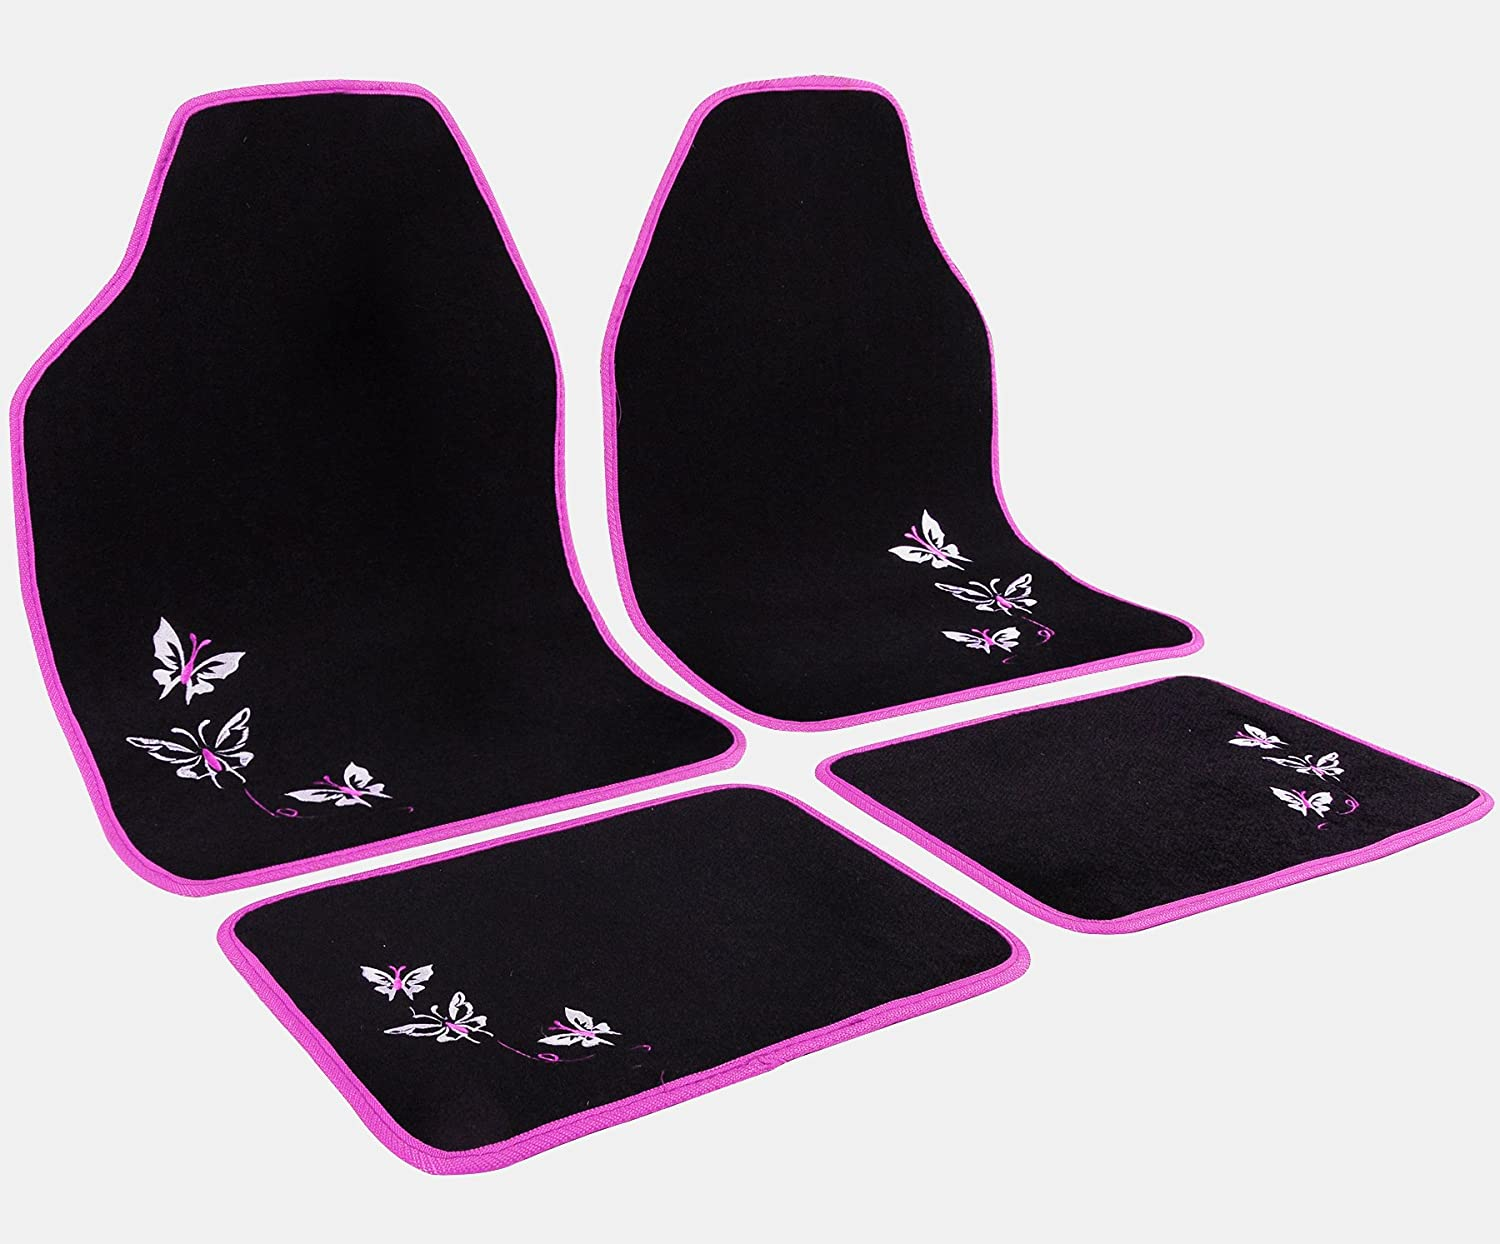 WOLTU AM7141 Universal Non-Slip Carpet Car Floor Mat Set of 4 Piece Front & Rear, Black with Pink Embroidery Butterfly